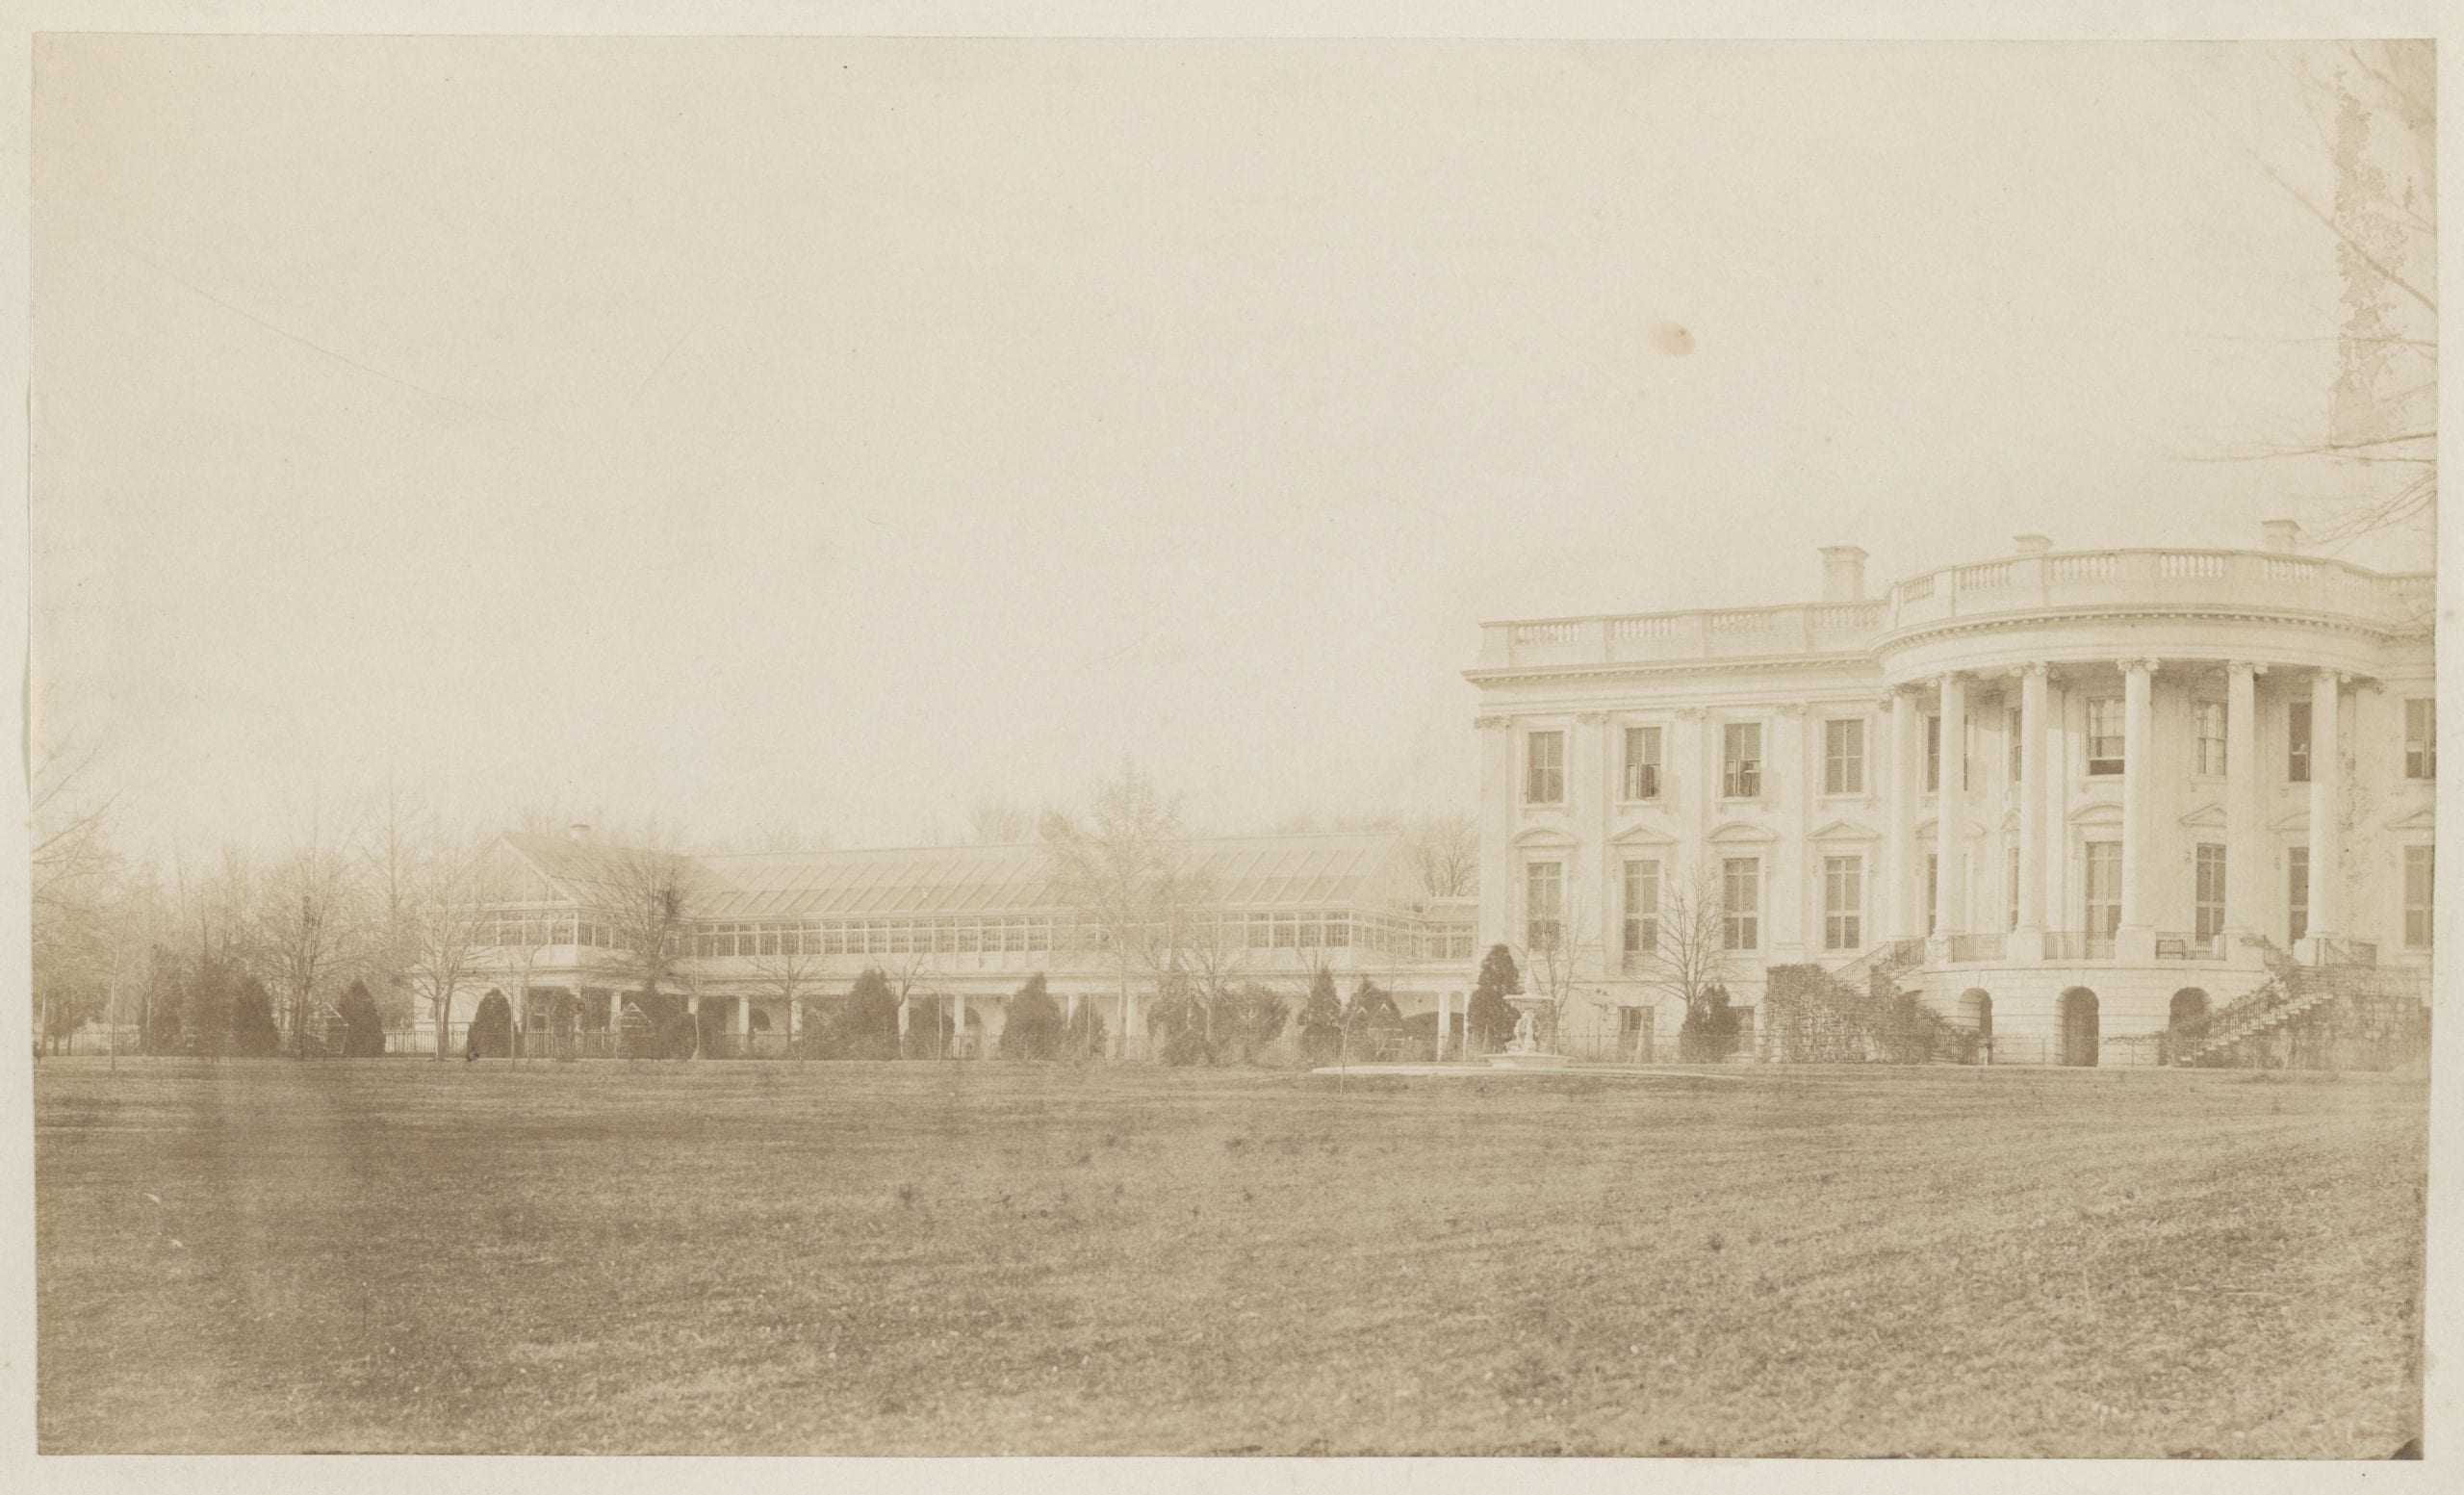 The White House conservatory in 1857